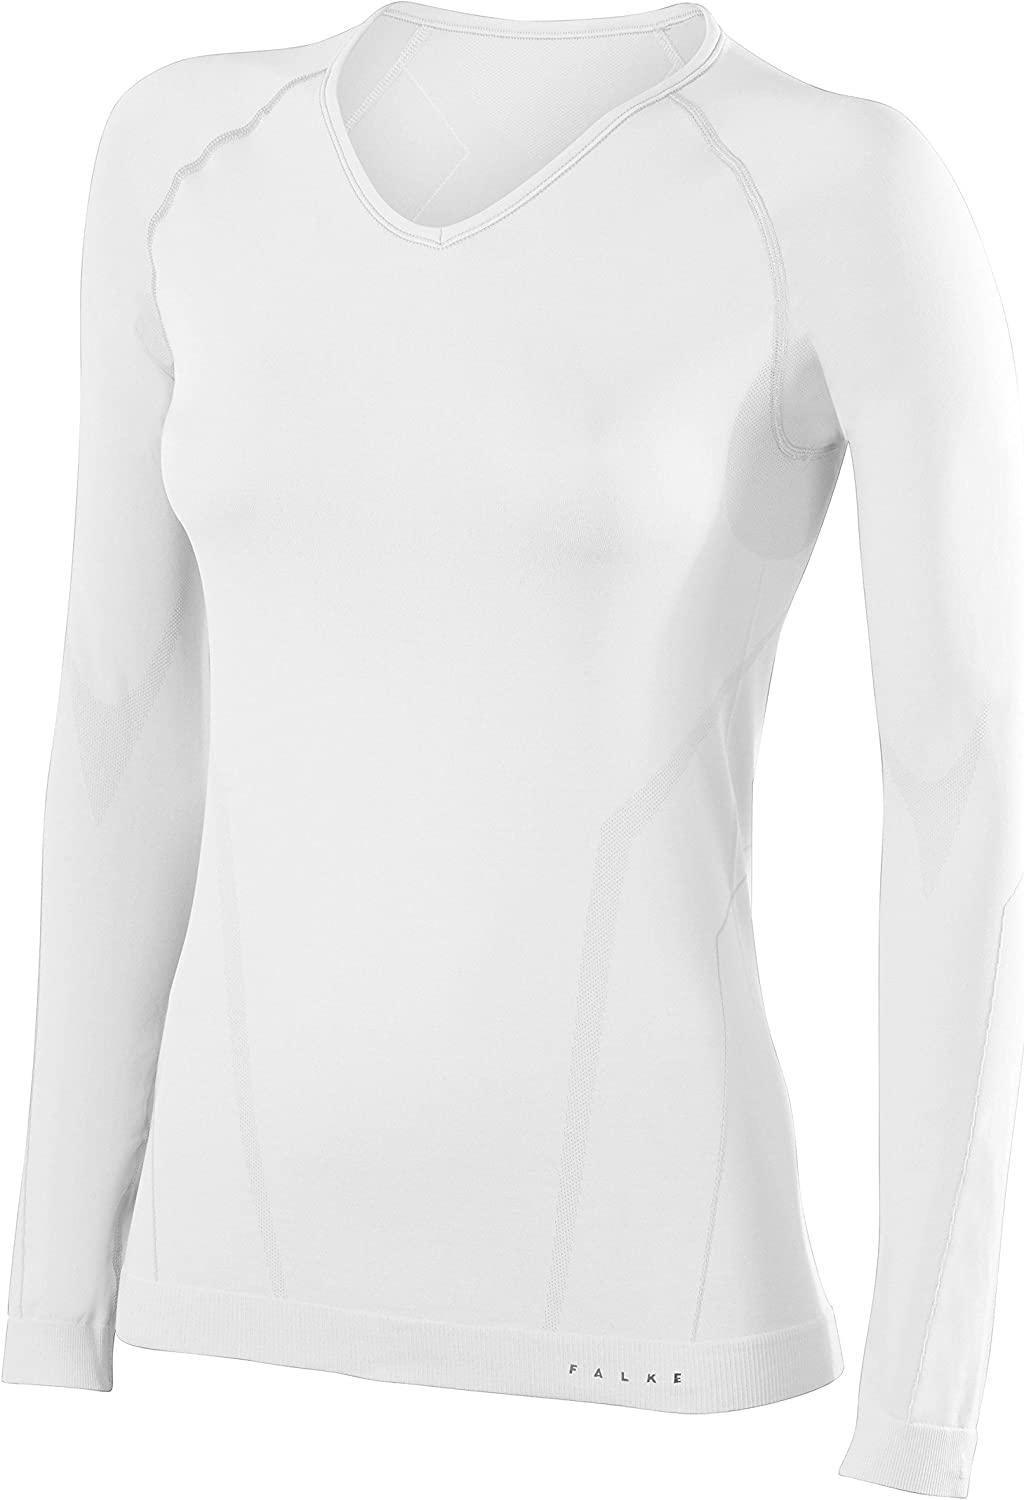 Falke Womens Tight Fit Long Sleeve V Neck Shirt  White